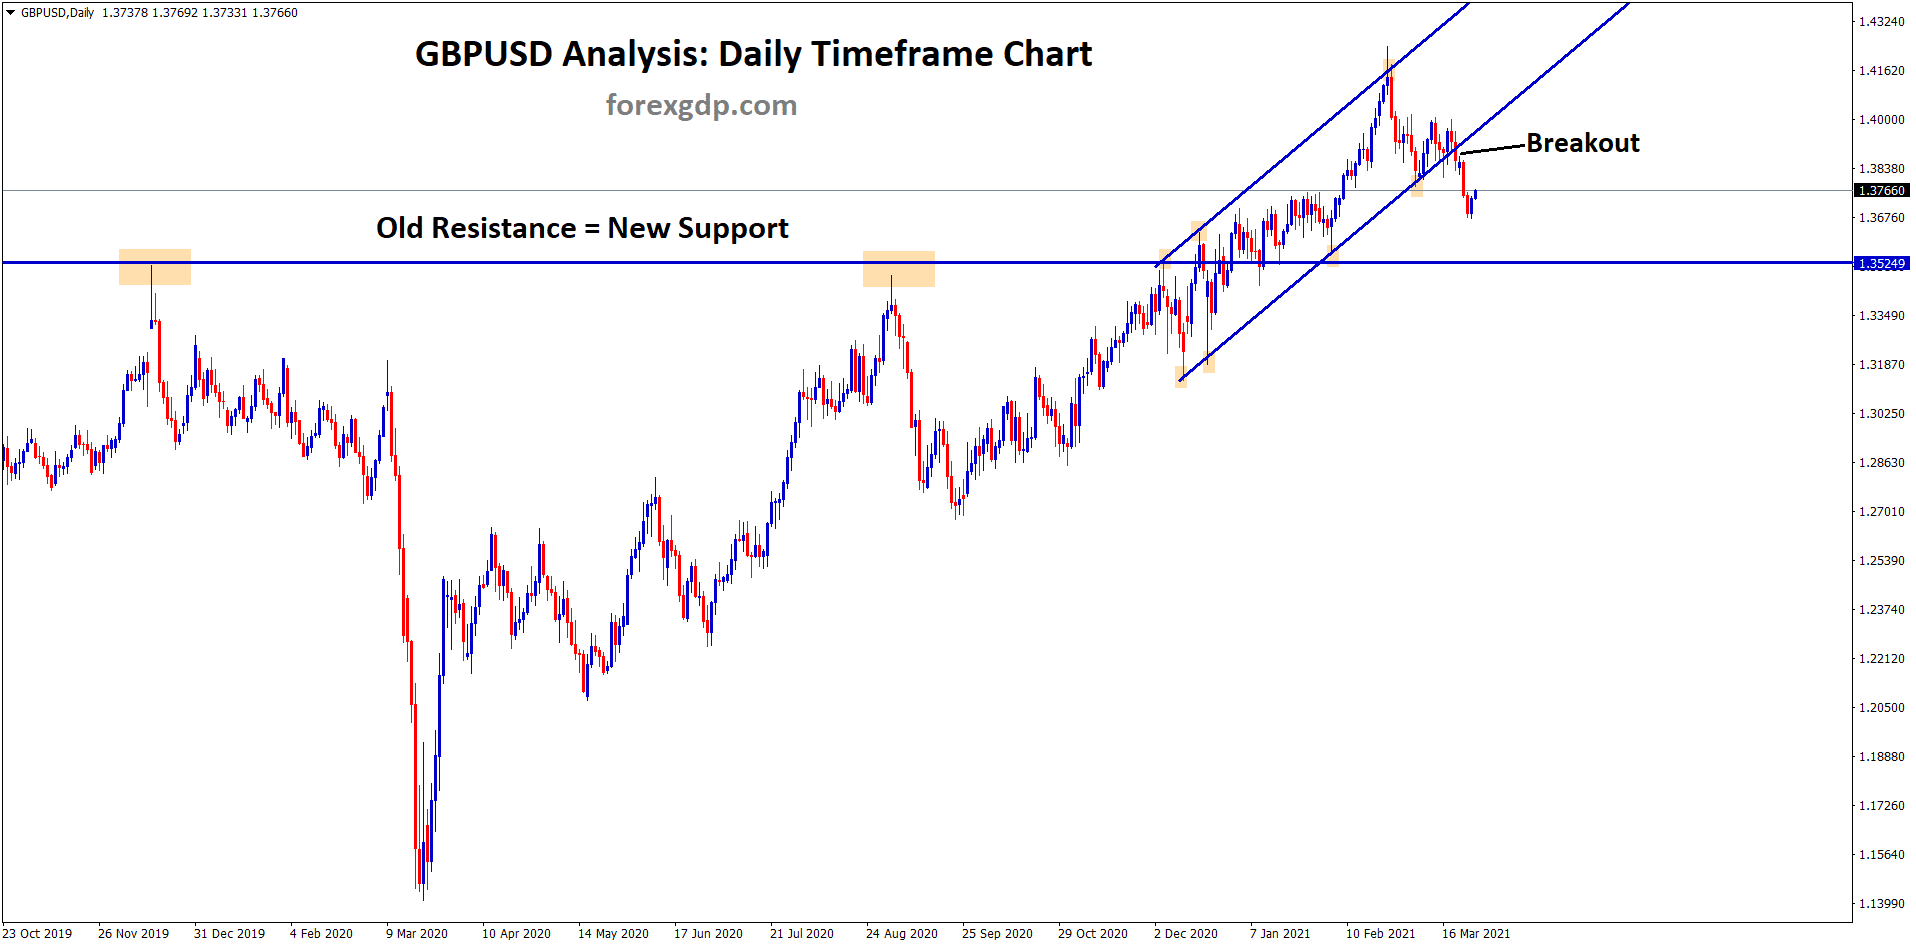 gbpusd breakout the uptrend line and trying to retest the old resistance level